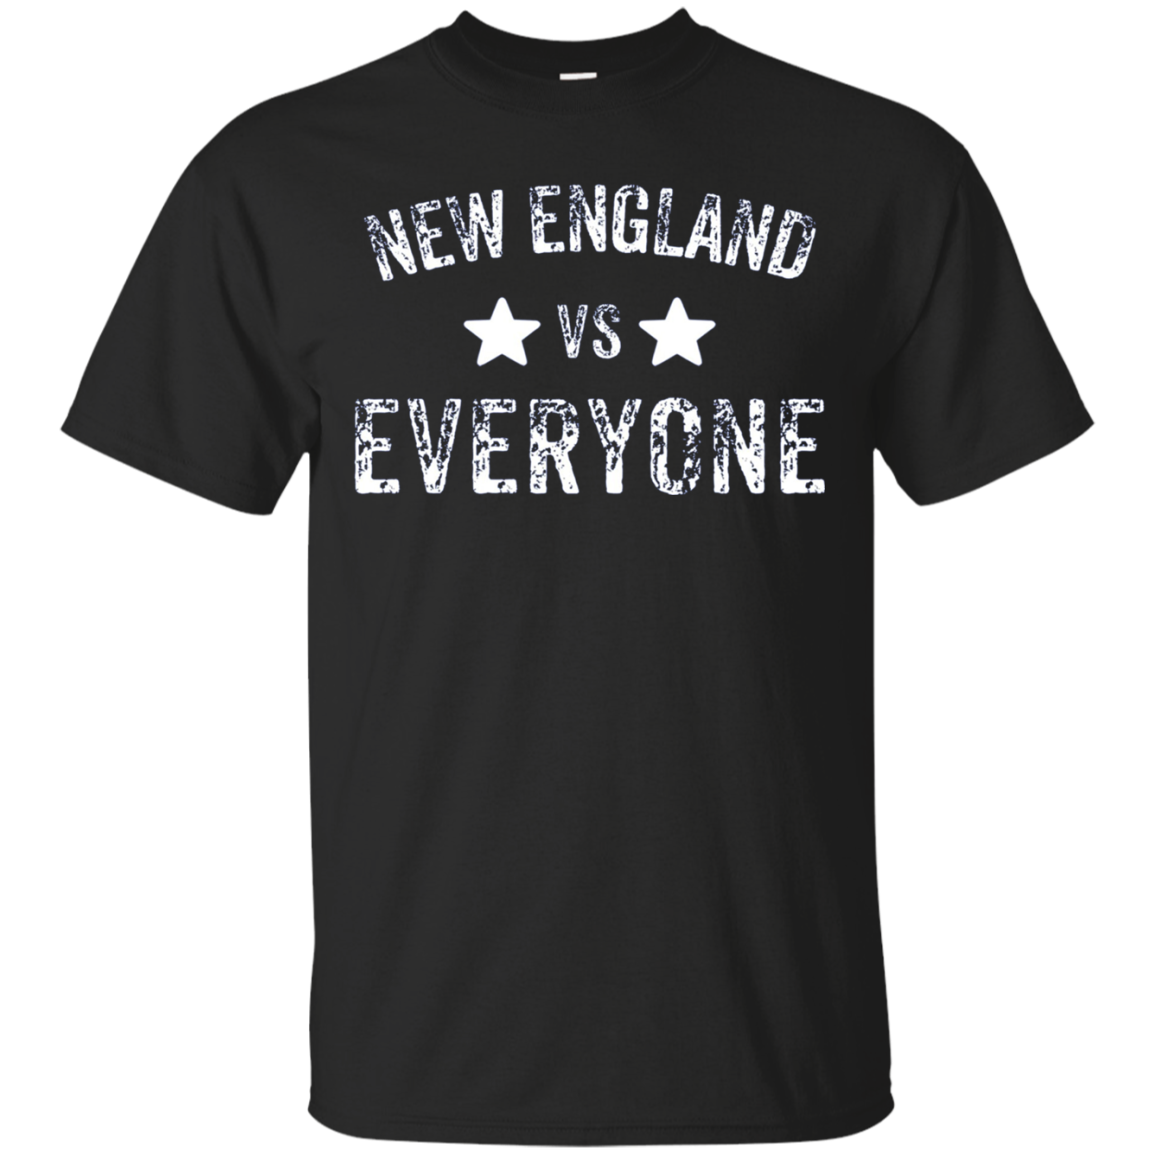 New England VS Everyone - Season Trend T-Shirt Long sleeve